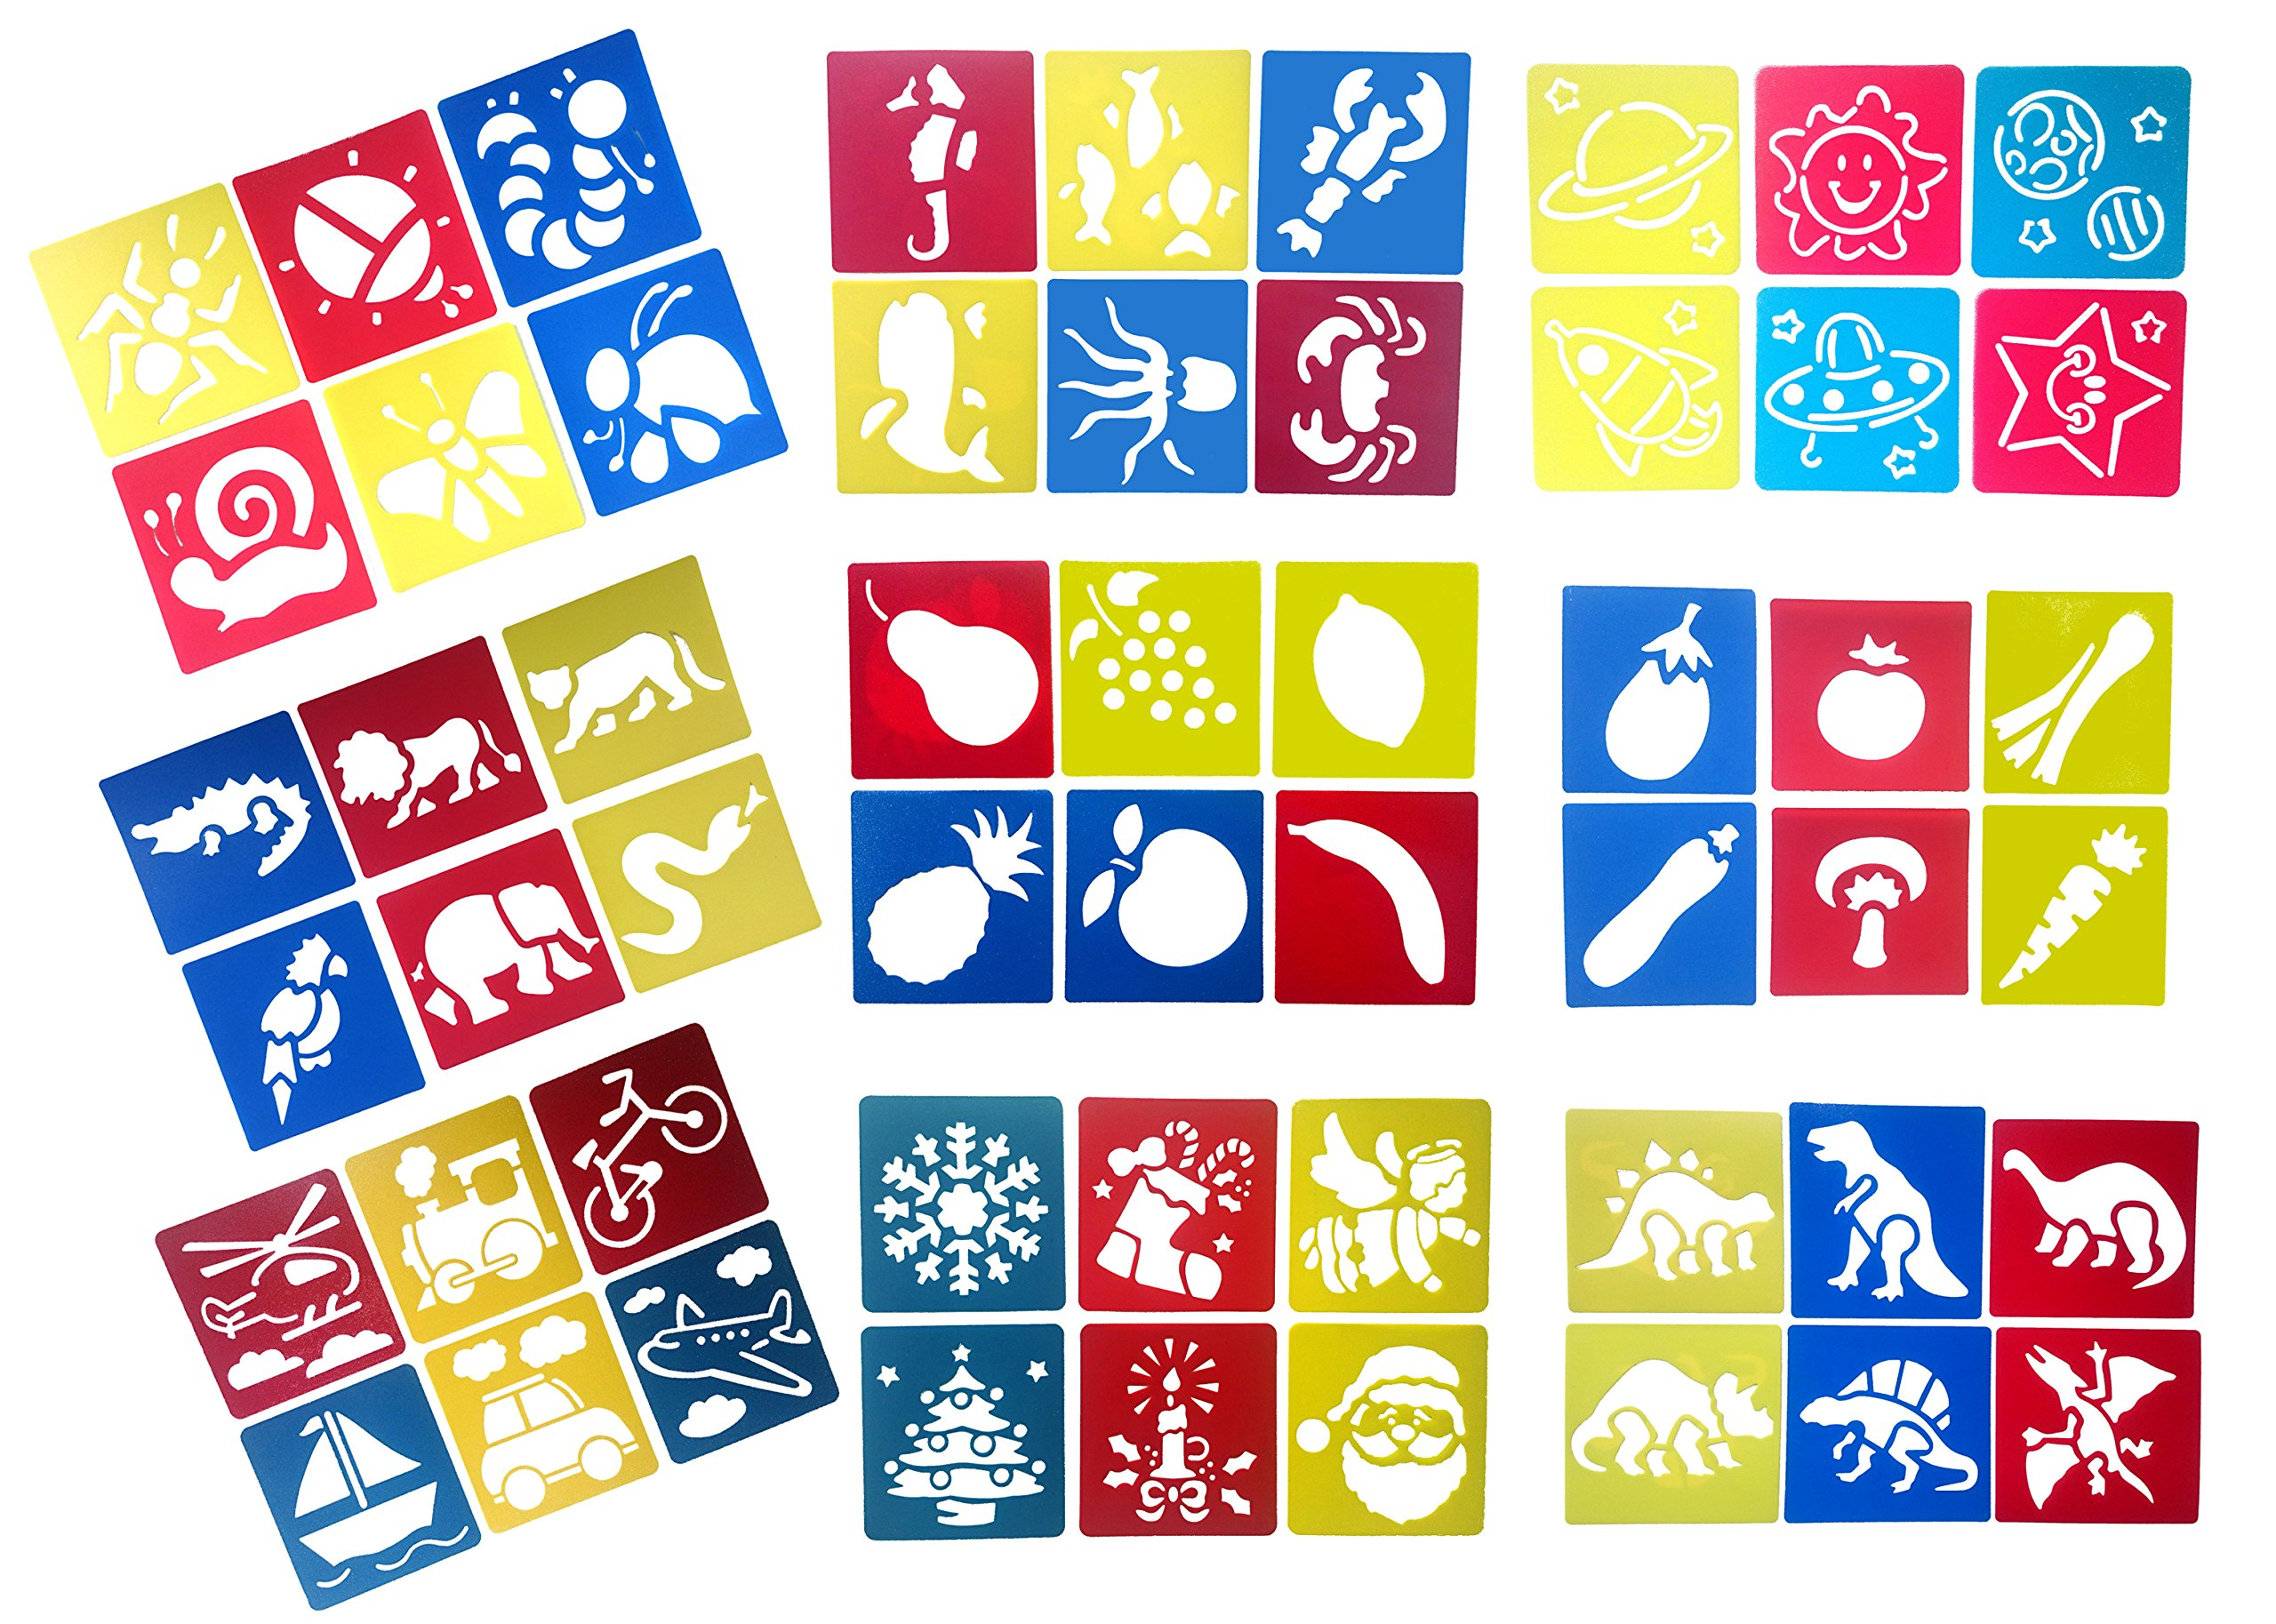 Z-Color 9 Packs(54 pieces) Washable Plastic Children's Drawing Template Board Set Toys Kids Painting Stencils Animal Fruit Transport